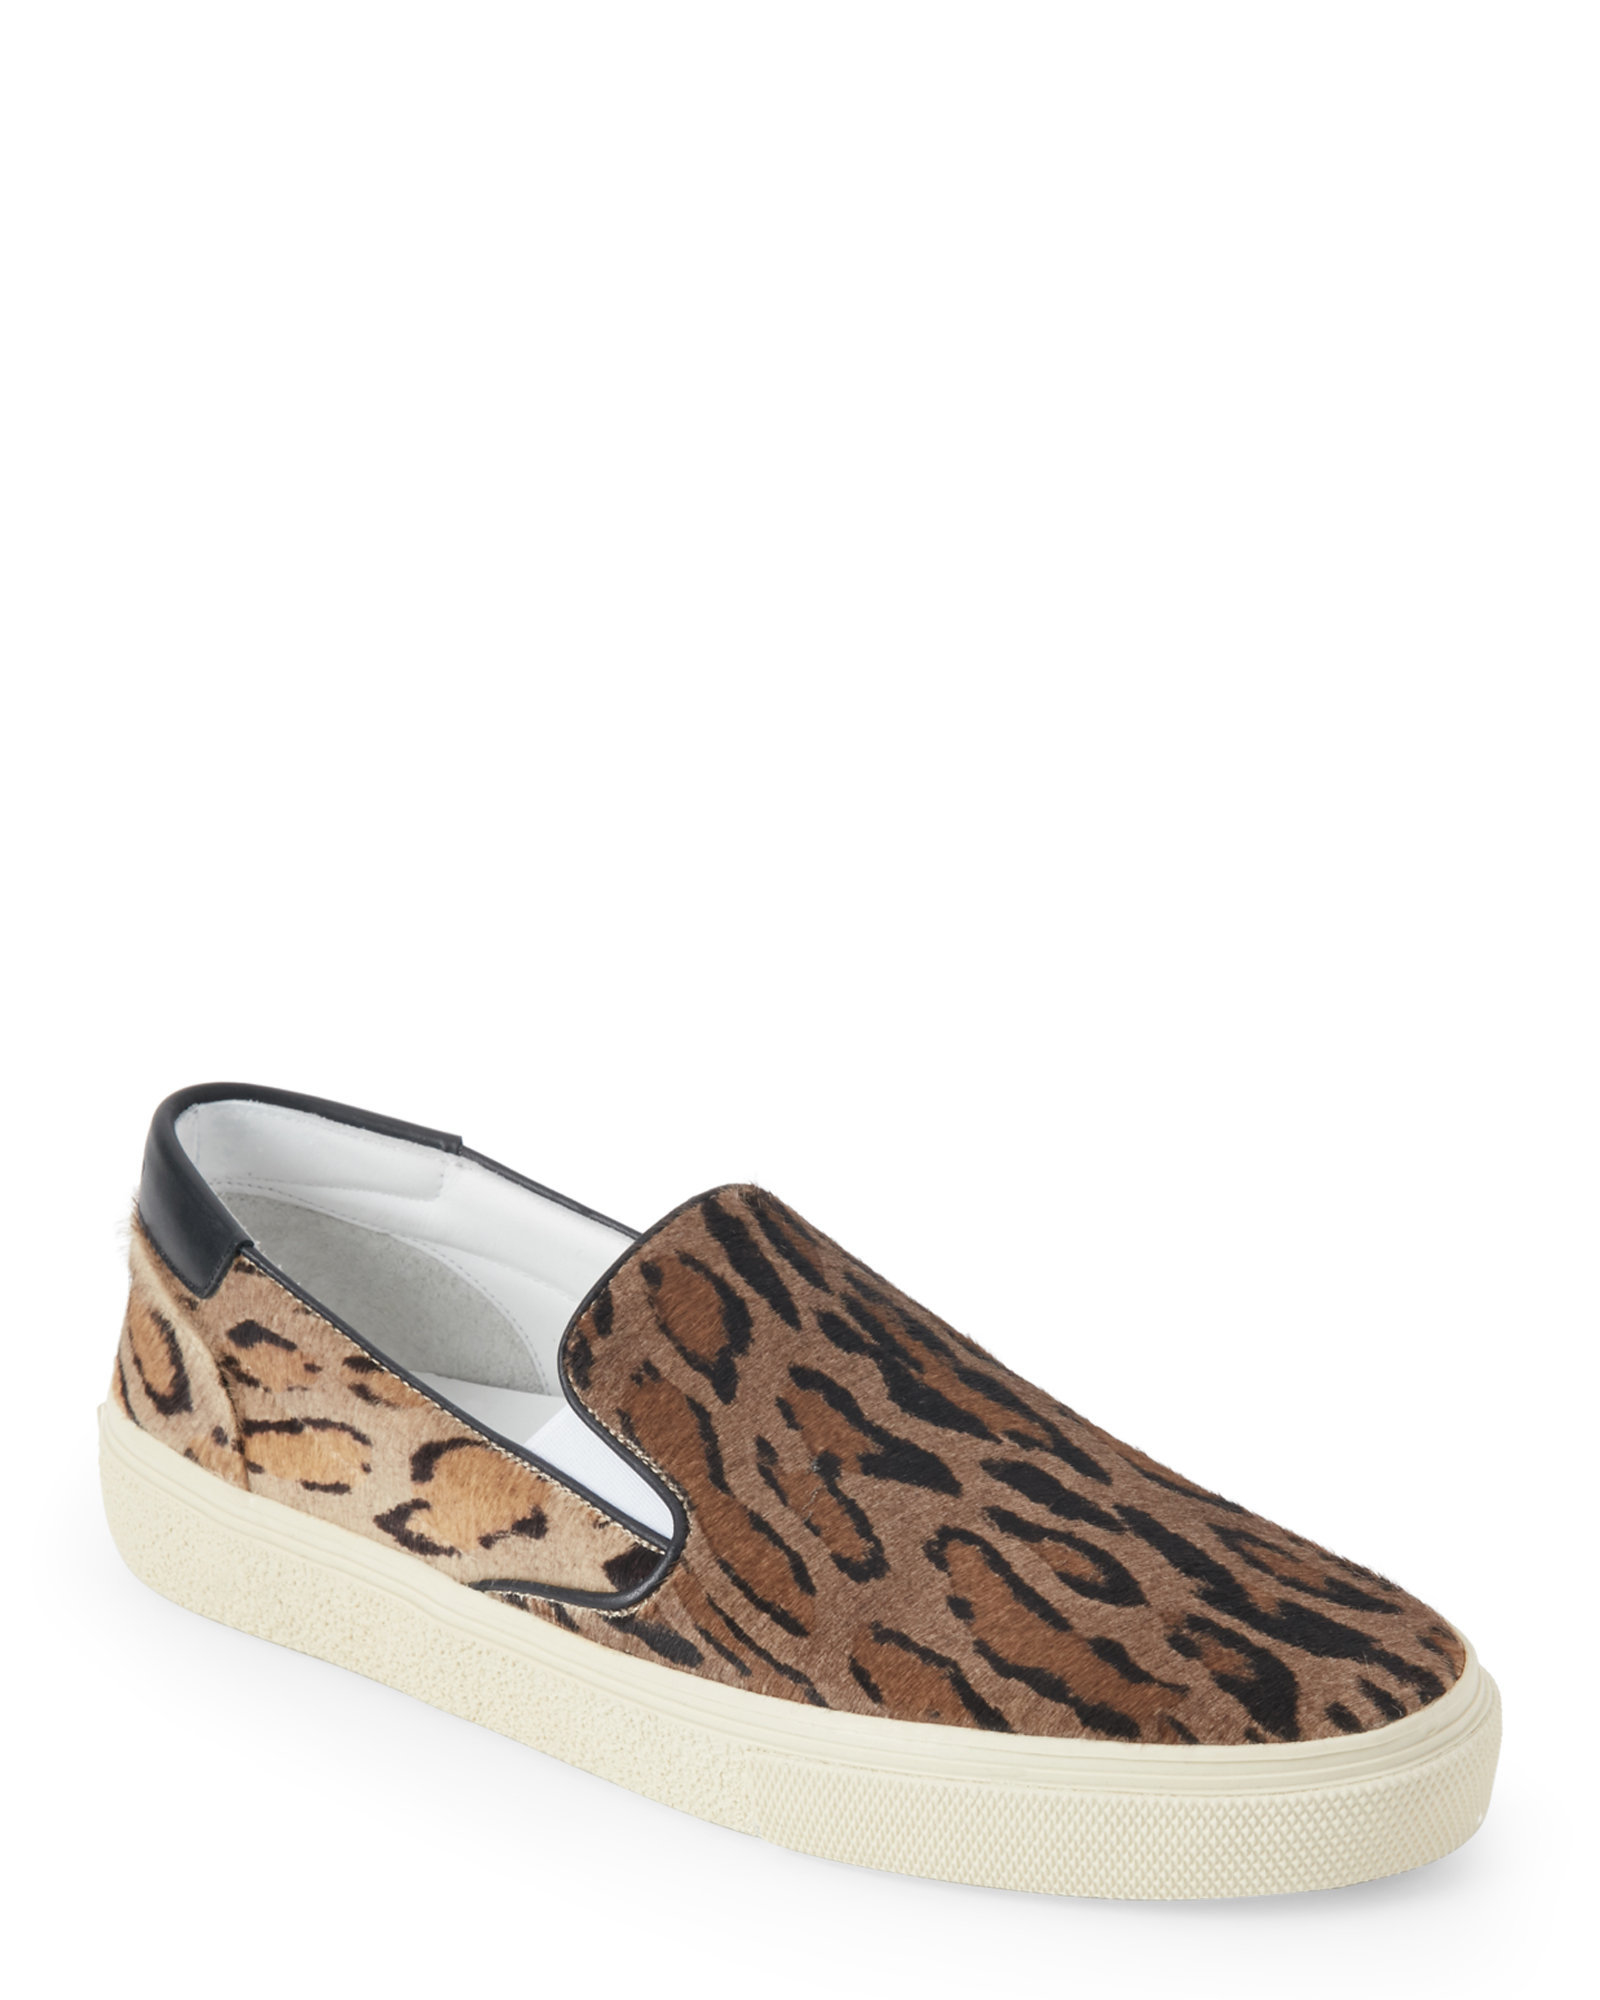 saint laurent leopard print slip on sneakers lyst. Black Bedroom Furniture Sets. Home Design Ideas